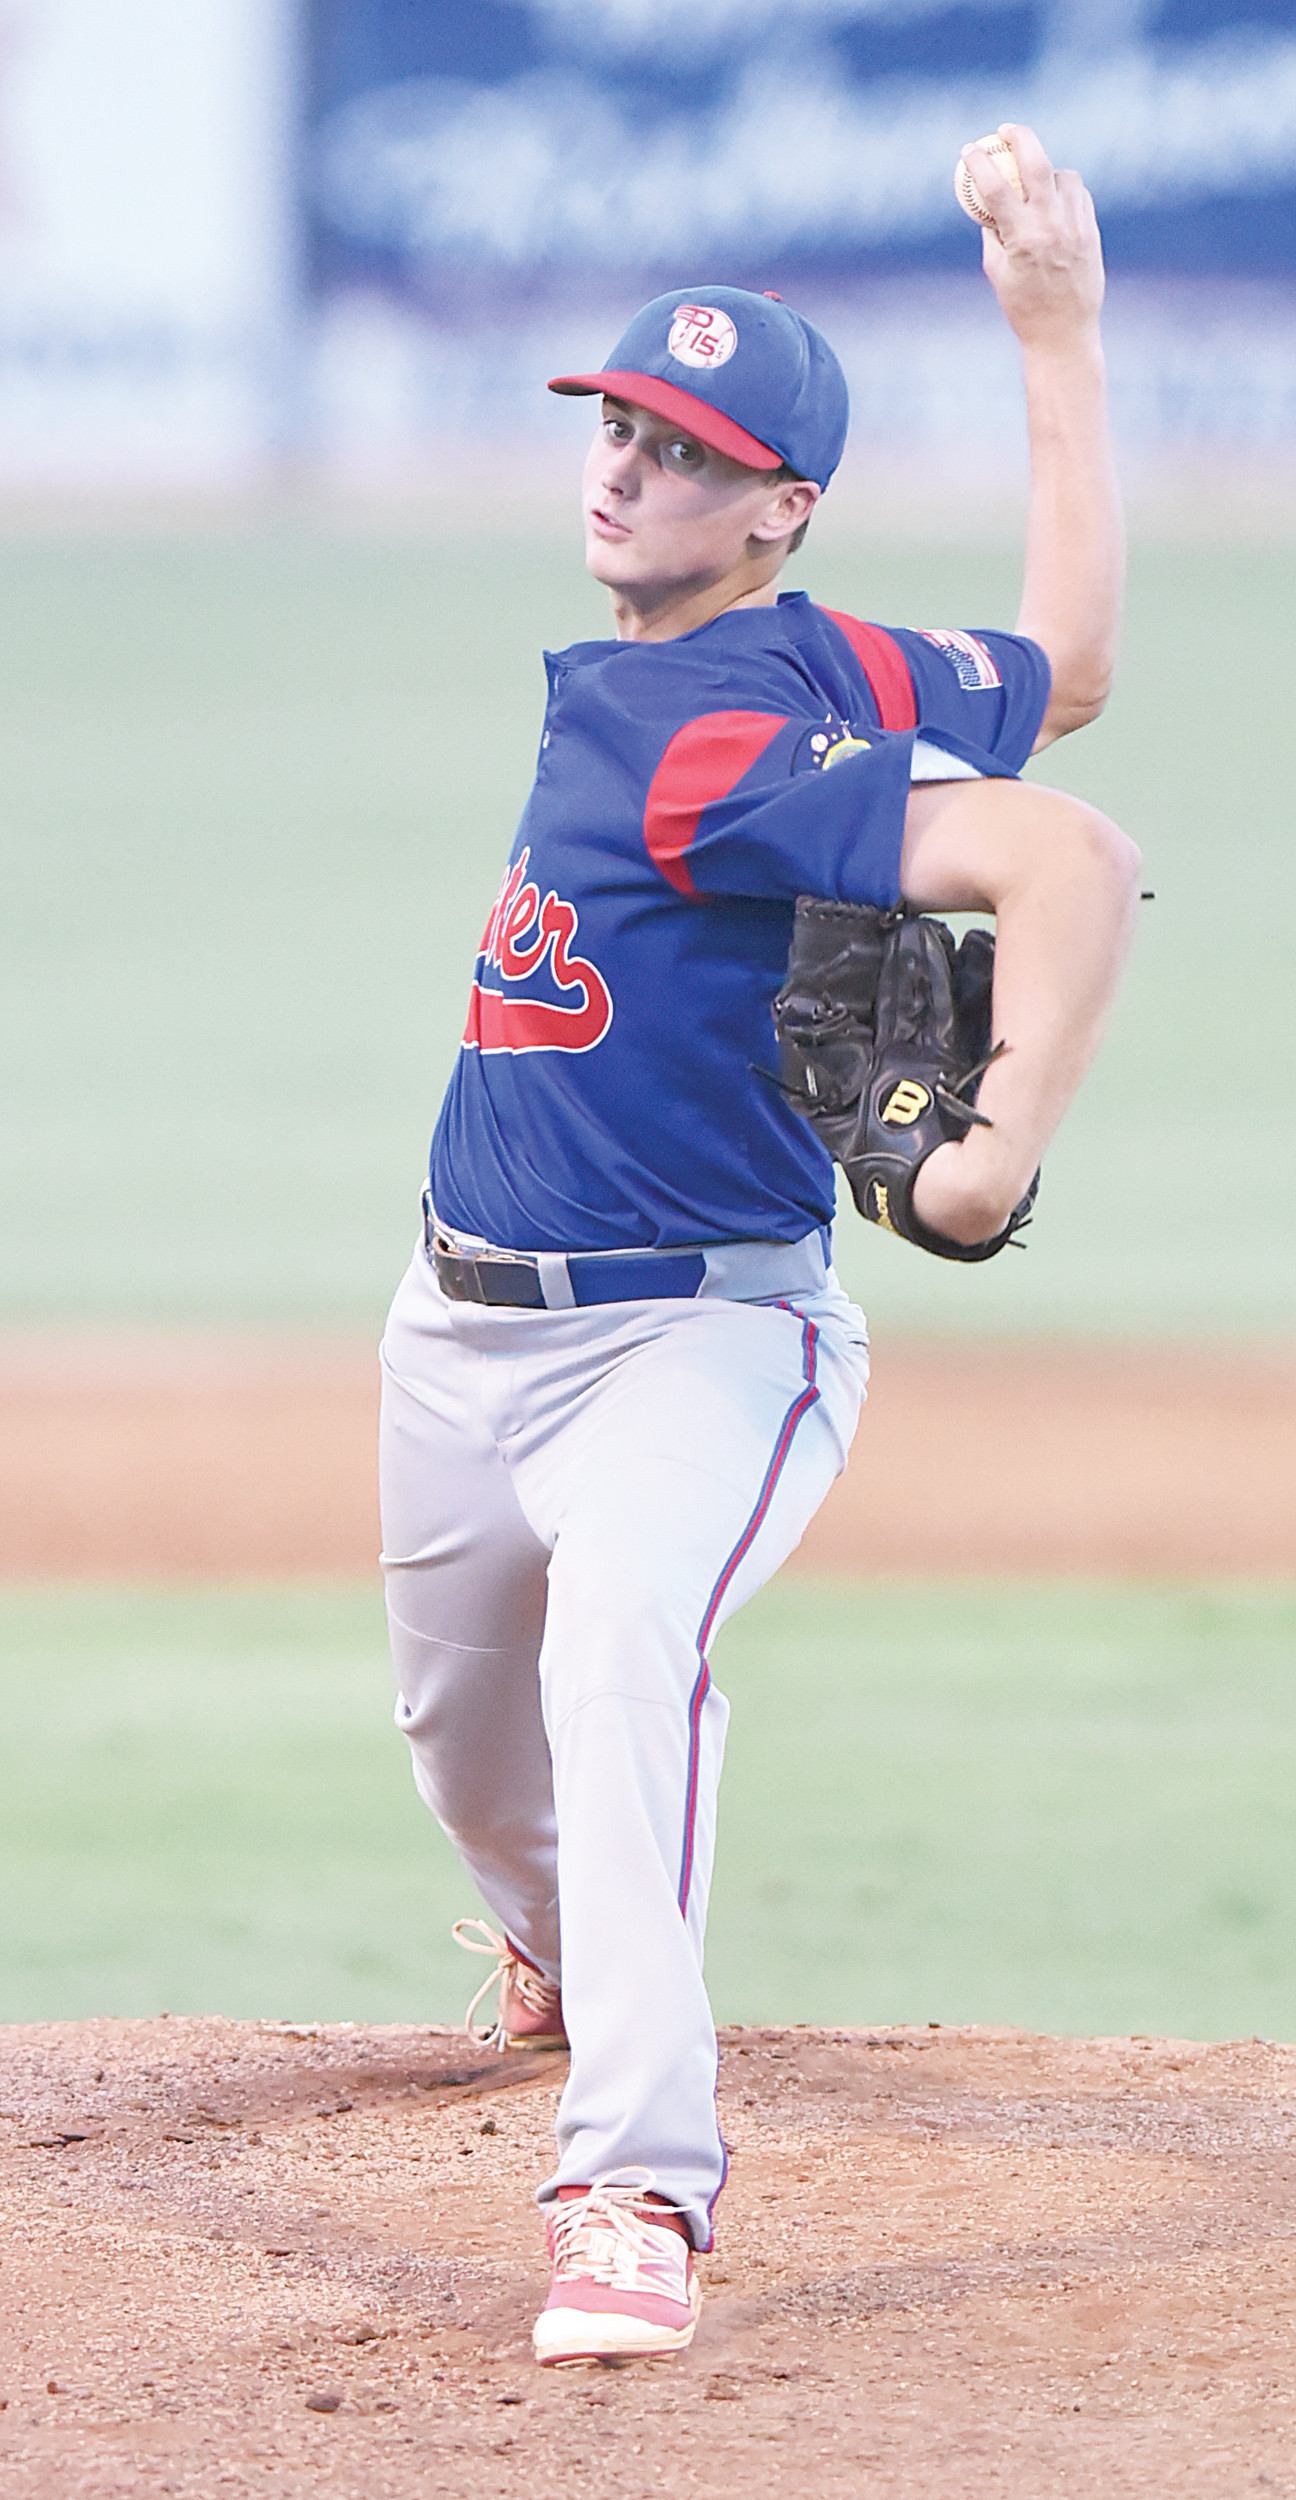 Lathan Todd will be on the mound for the Sumter P-15's when they open the American Legion state tournament against Gaffney at 7 p.m. on Saturday at Riley Park.